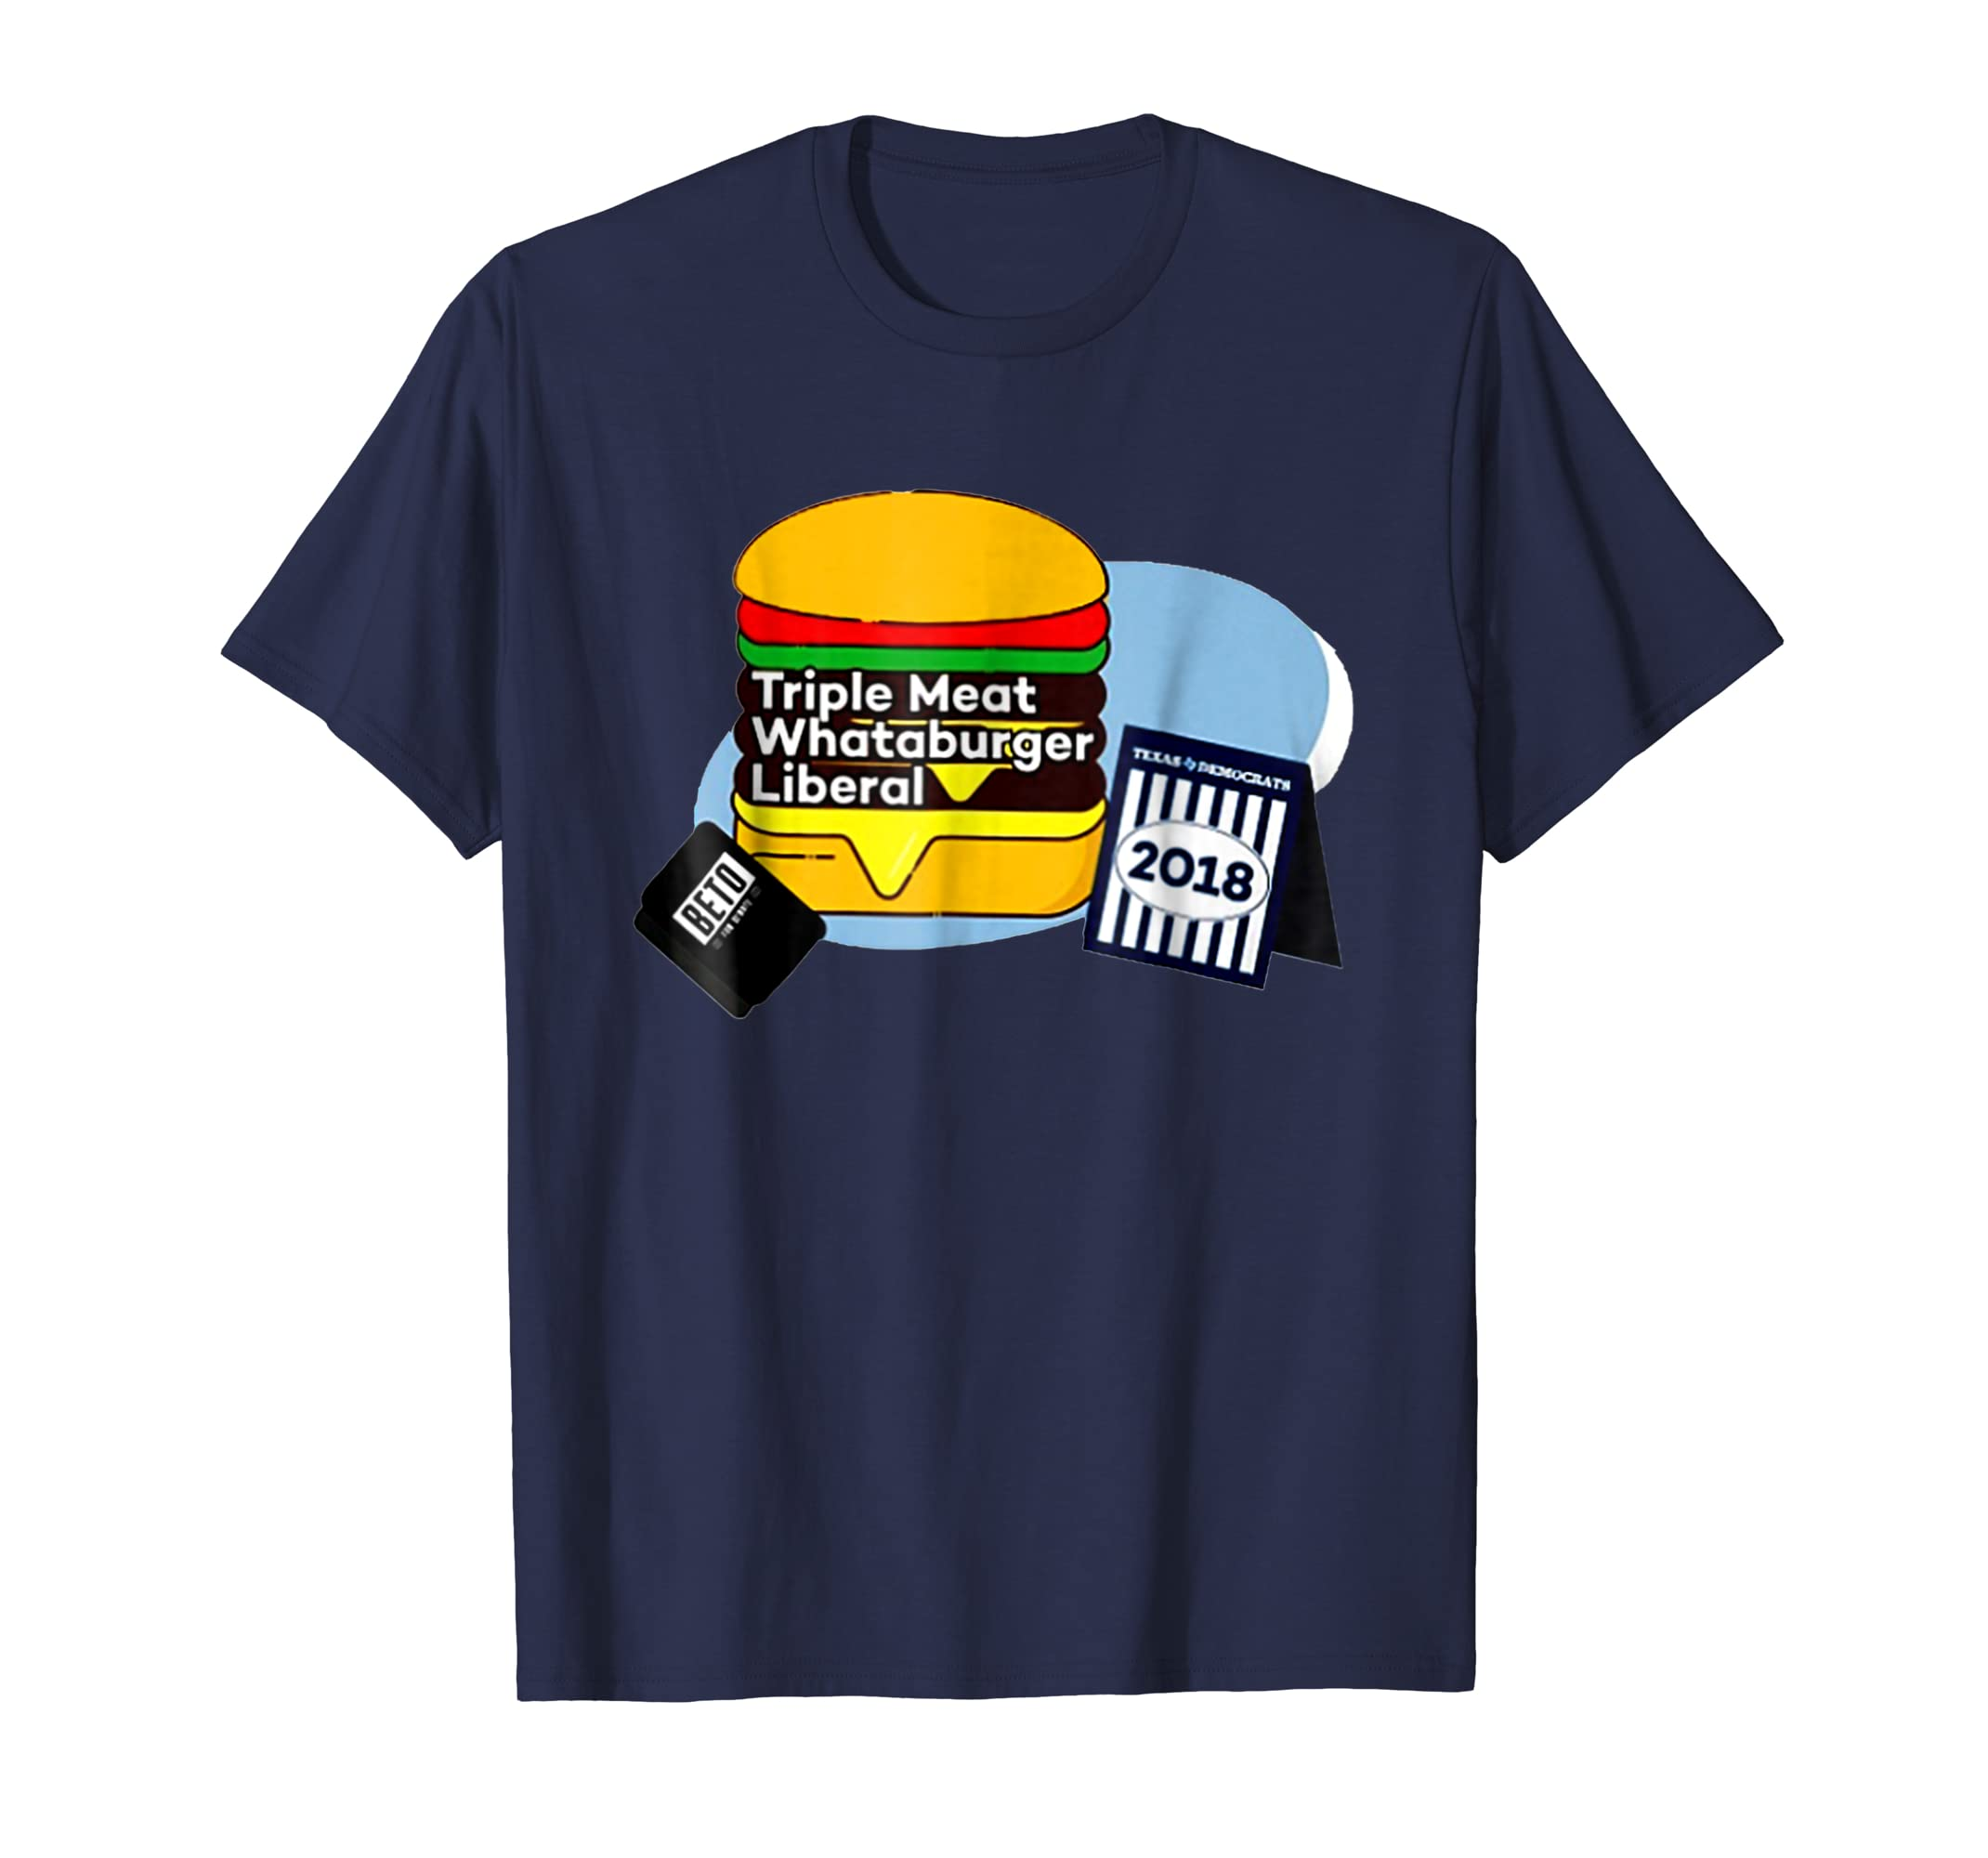 Triple meat whataburger liberal funny T Shirt Beto 2018-Protee